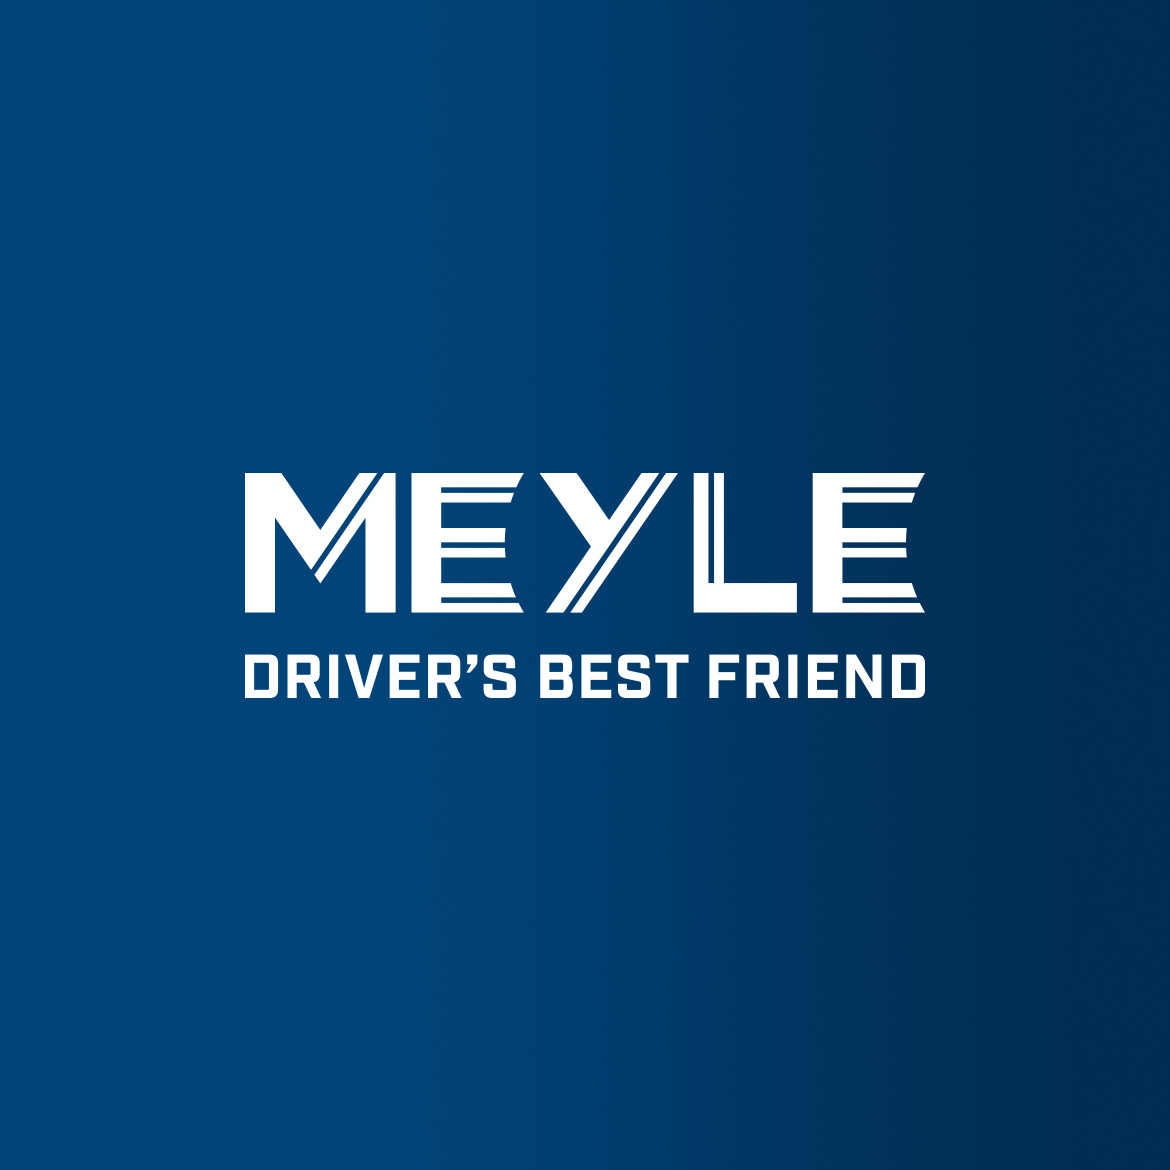 Driver's best friend: MEYLE revamps its brand identity